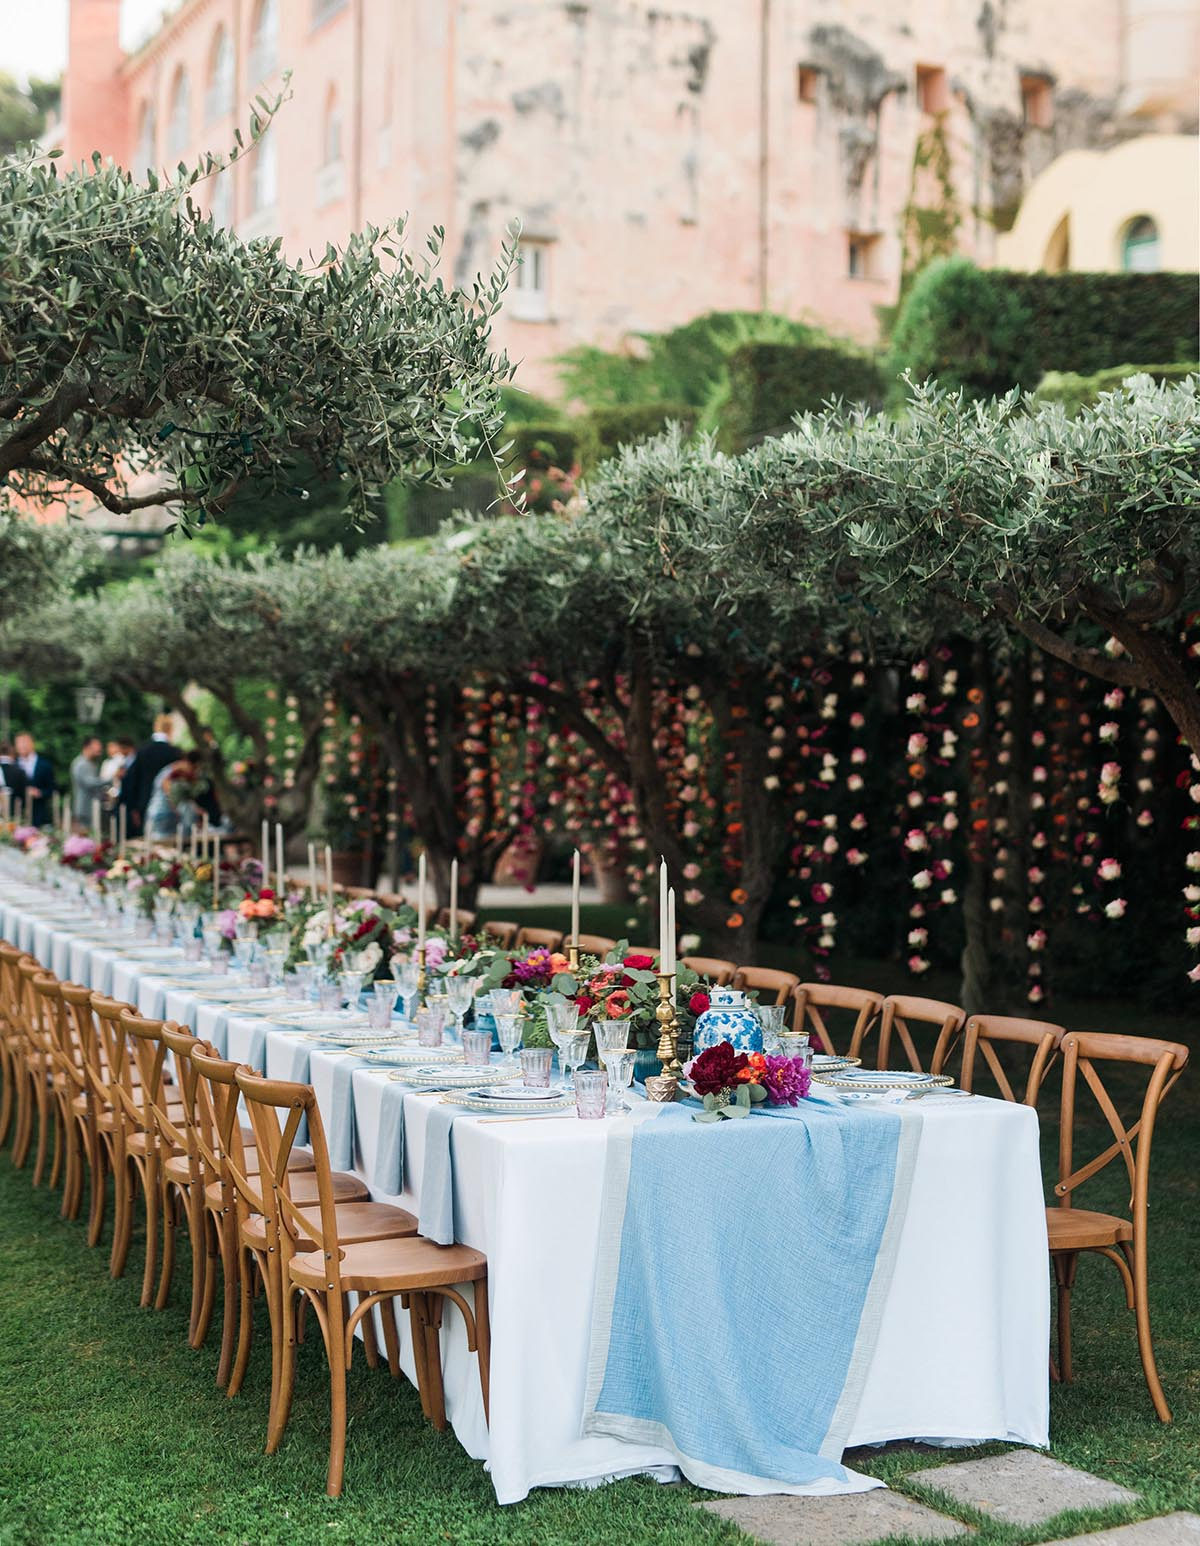 boho chic wedding on the Amalfi Coast in Ravello Italy with hanging flowers from olive trees